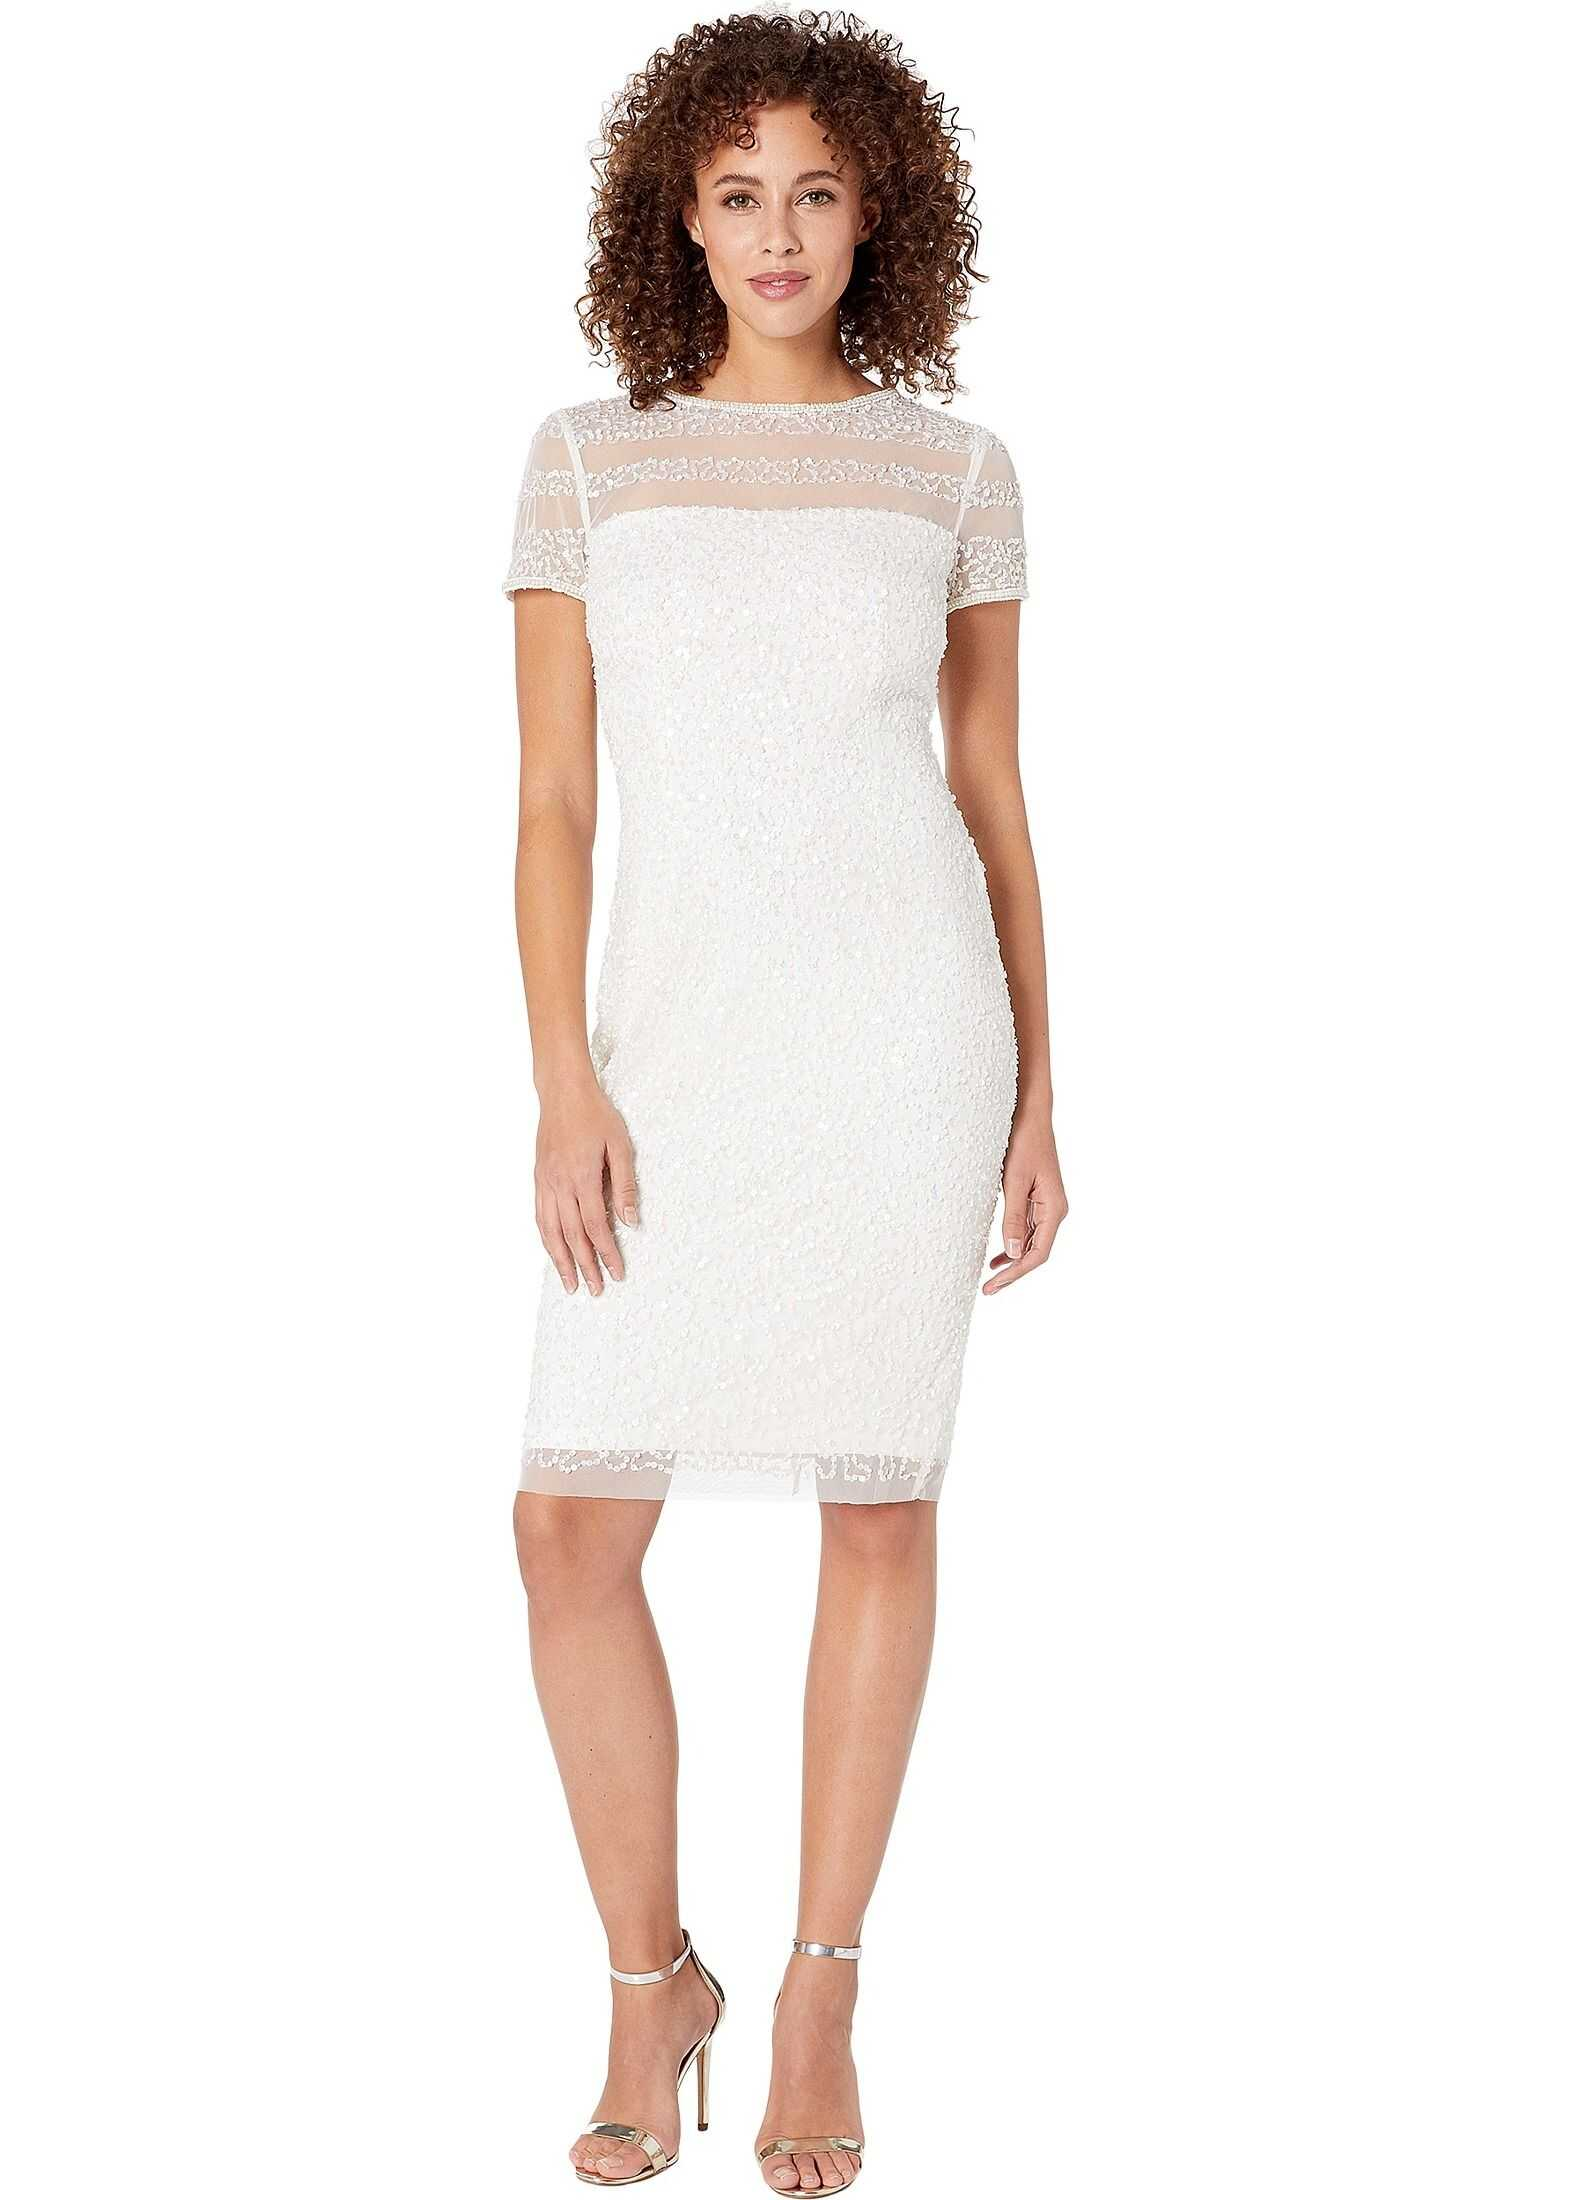 Adrianna Papell Beaded Illusion Cocktail Dress Ivory